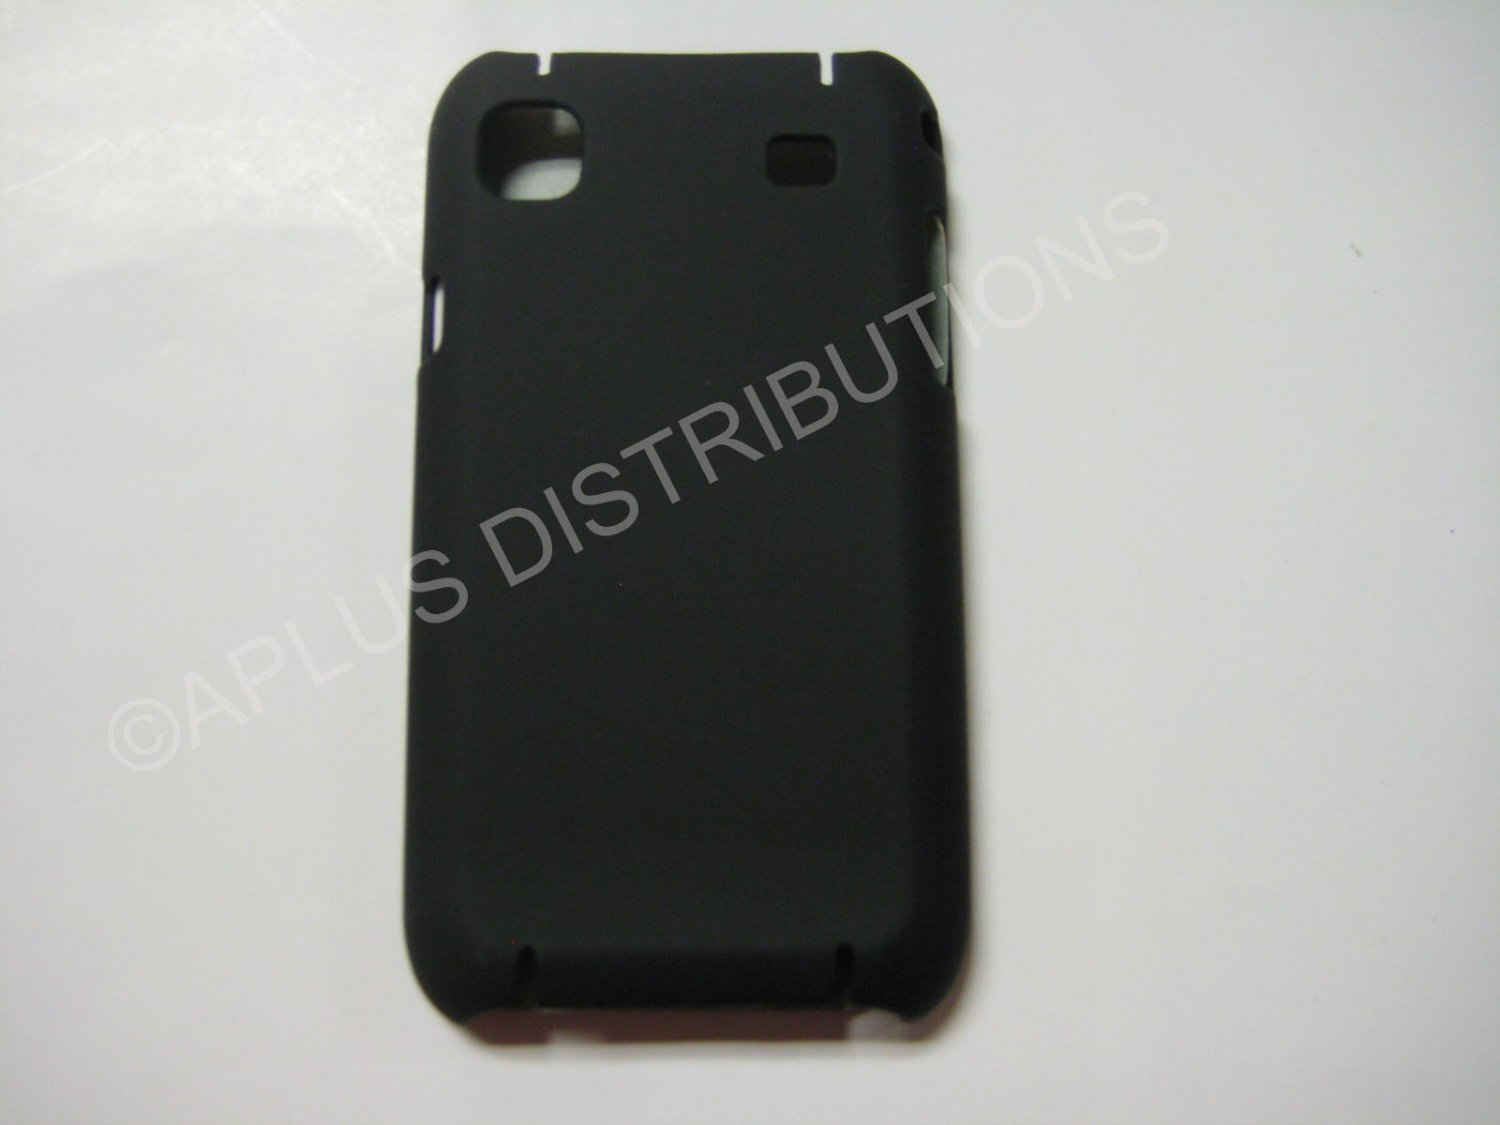 New Black Rubberized Hard Protective Cover For Samsung Galaxy S I9000 - (0051)